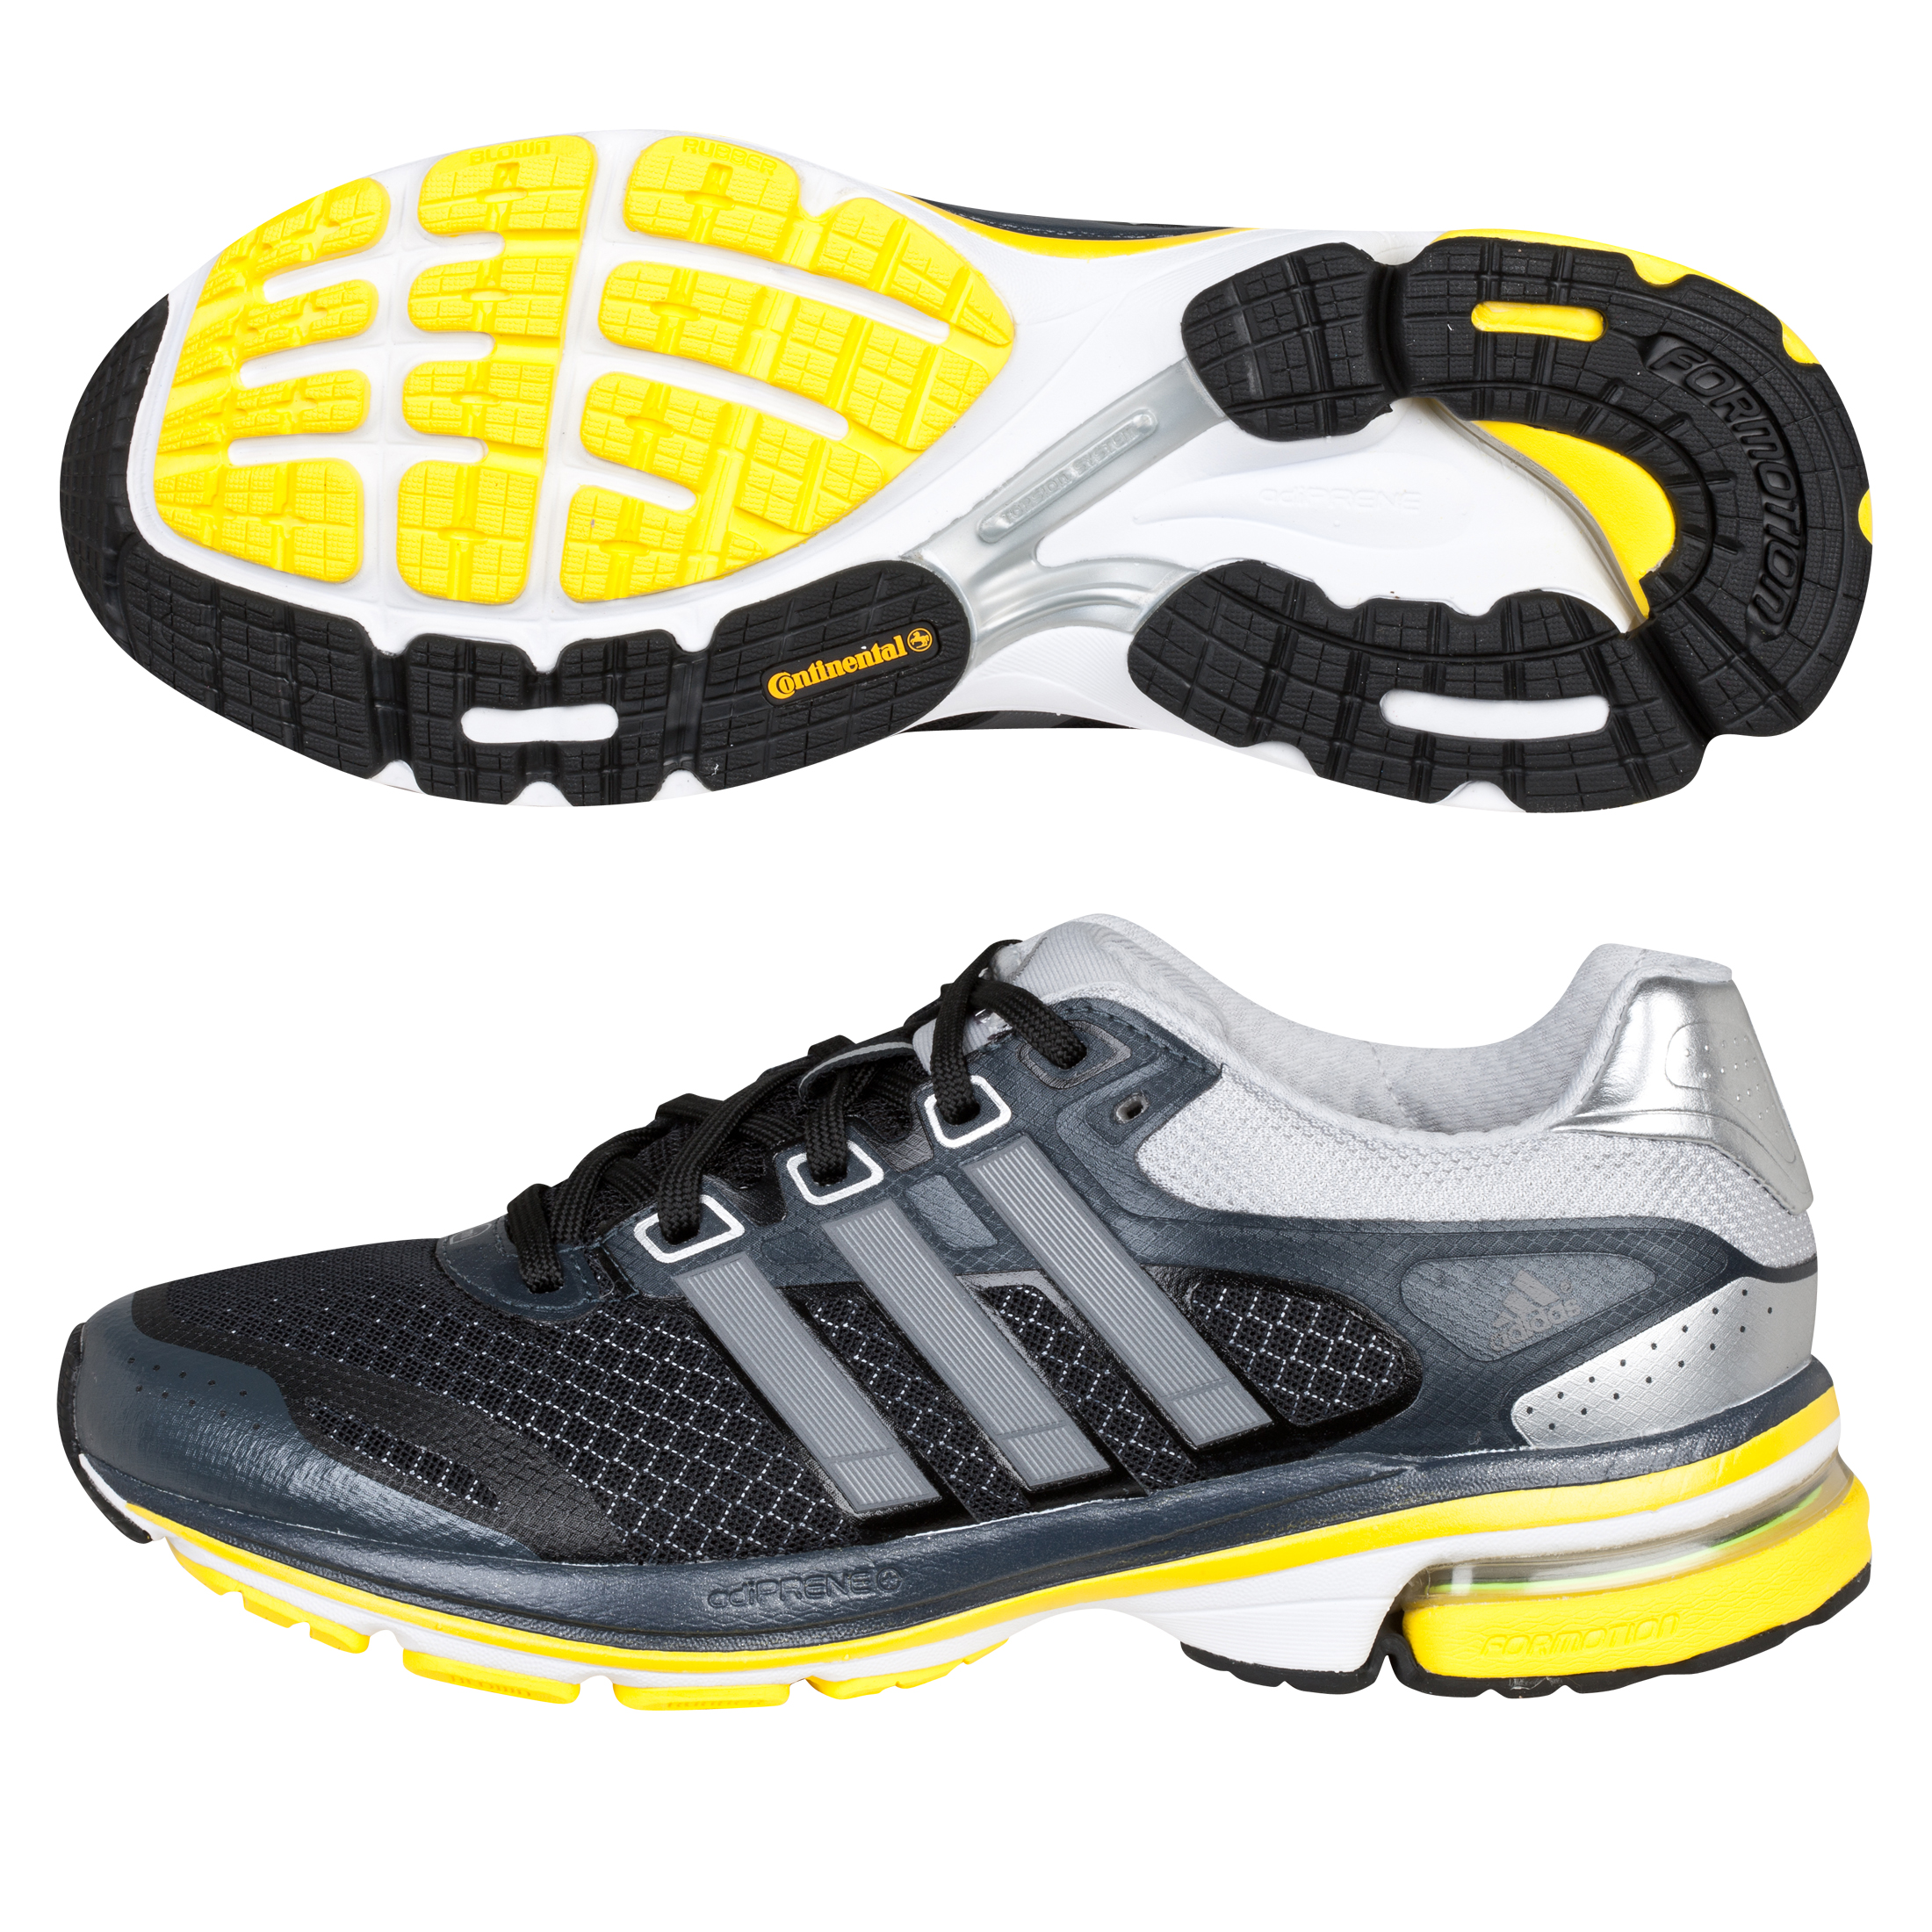 Adidas Super Nova Glide 5 Trainer - Womens